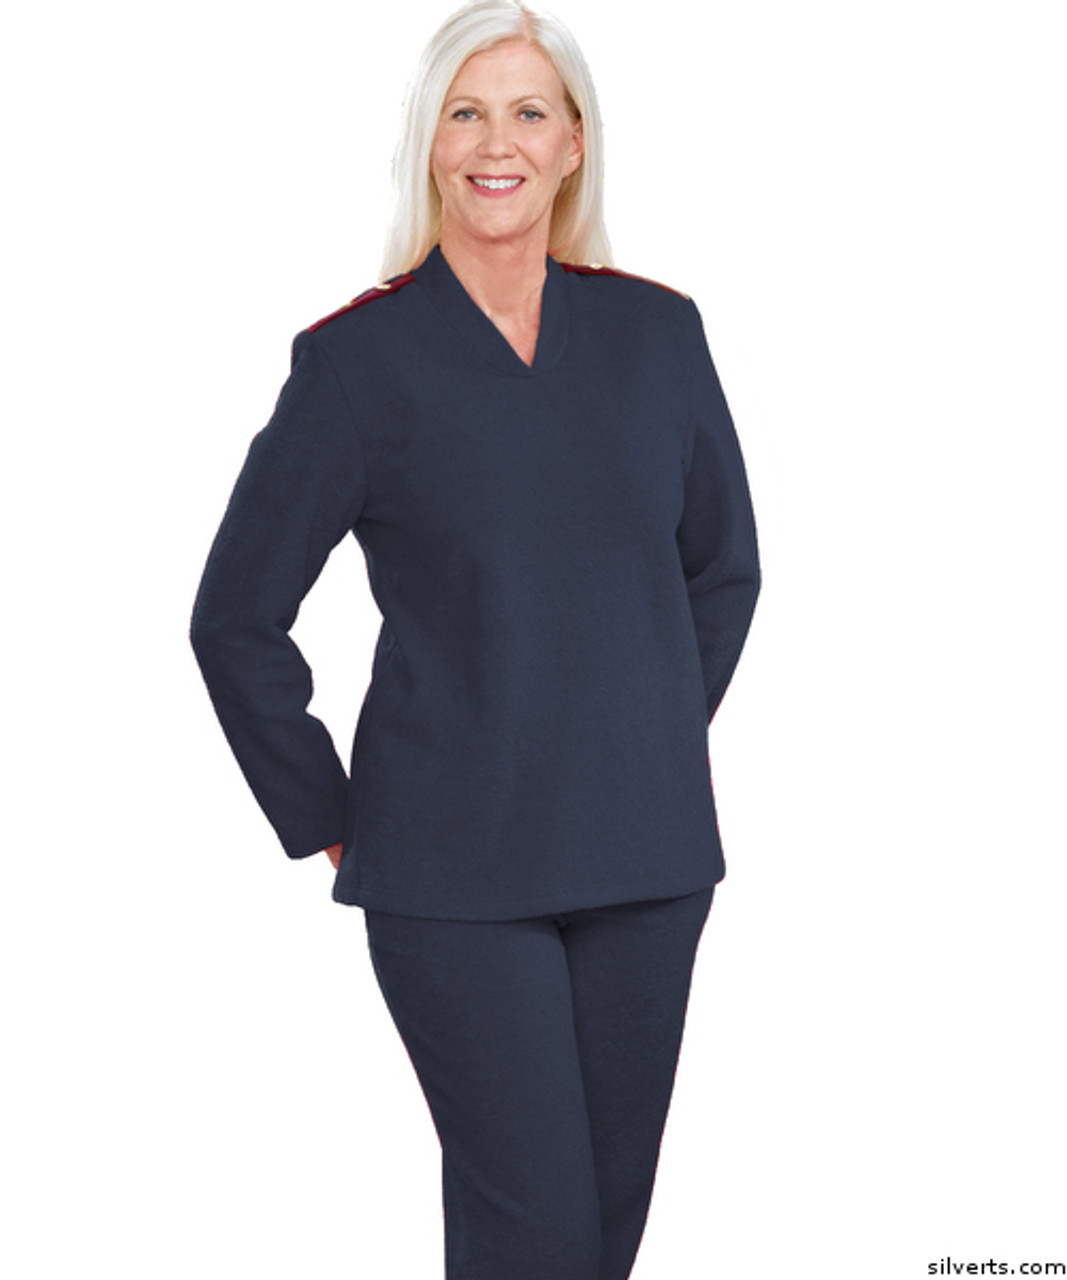 b445056adf9 Buy Online Silvert s 252510301 Plus Size Adaptive Tracksuit For Women